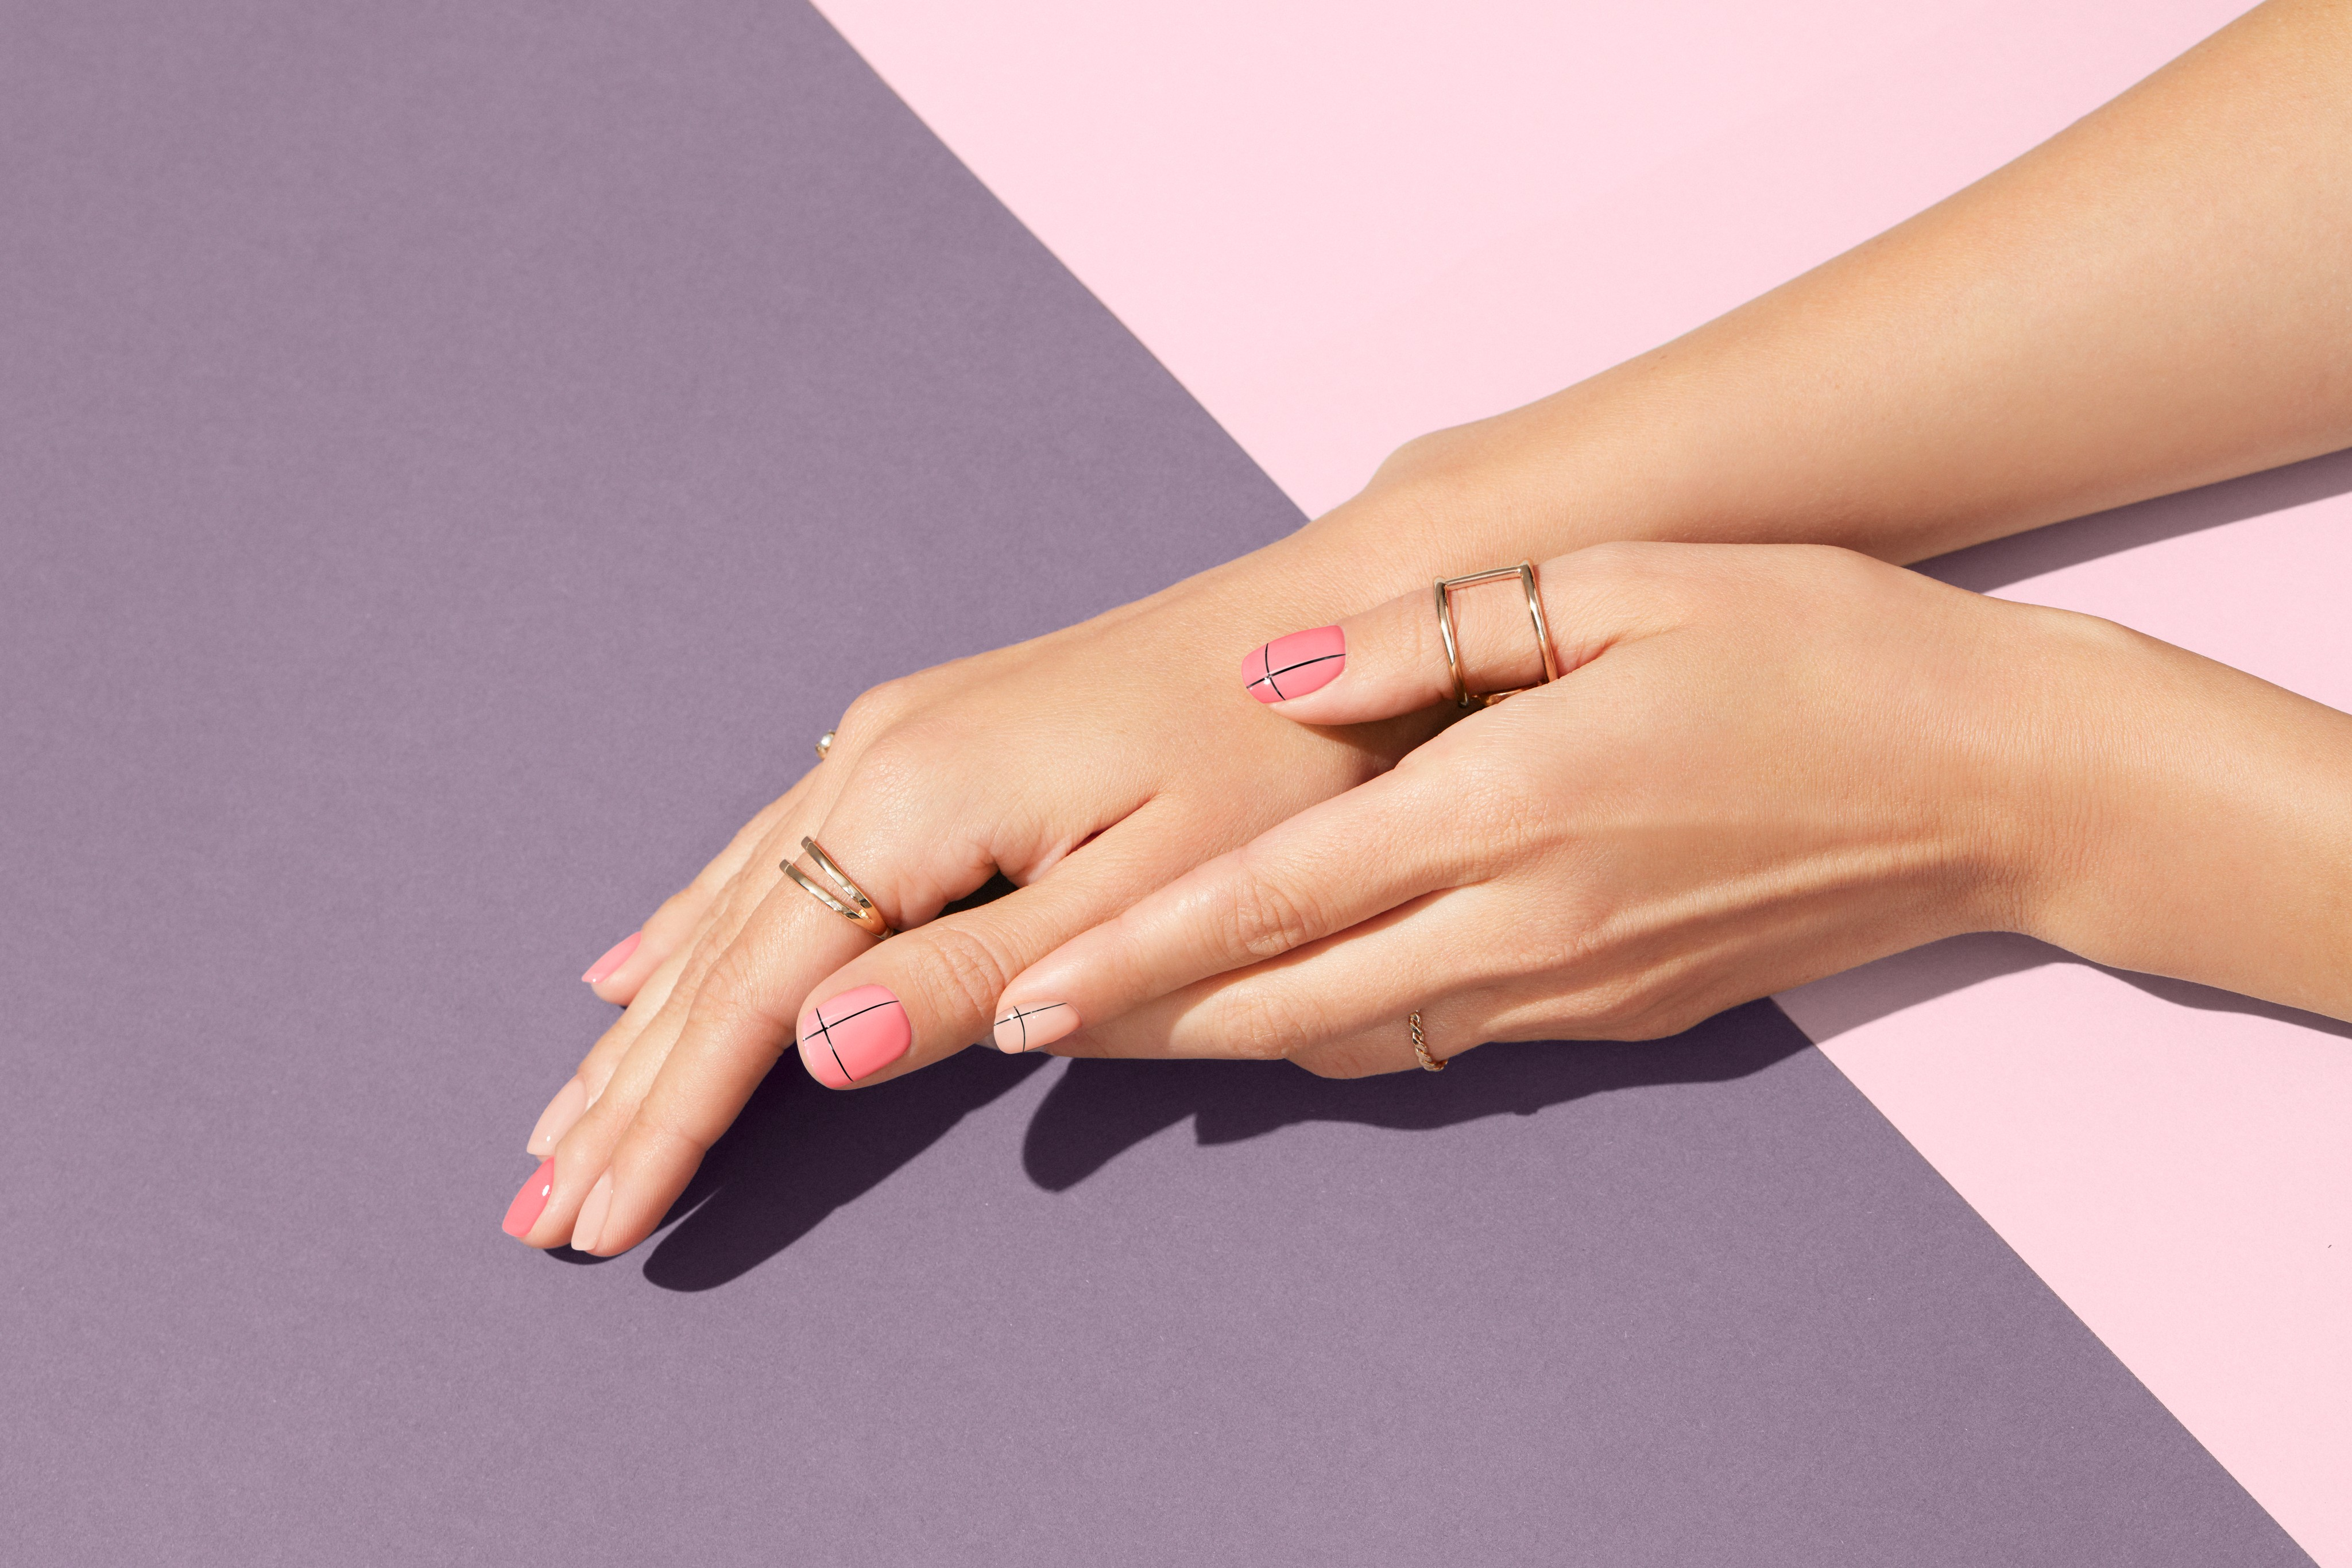 Nailcare-beautyvisual-minimalist-nude-look-thin-lines-purple-color-0821-Web-Rendition